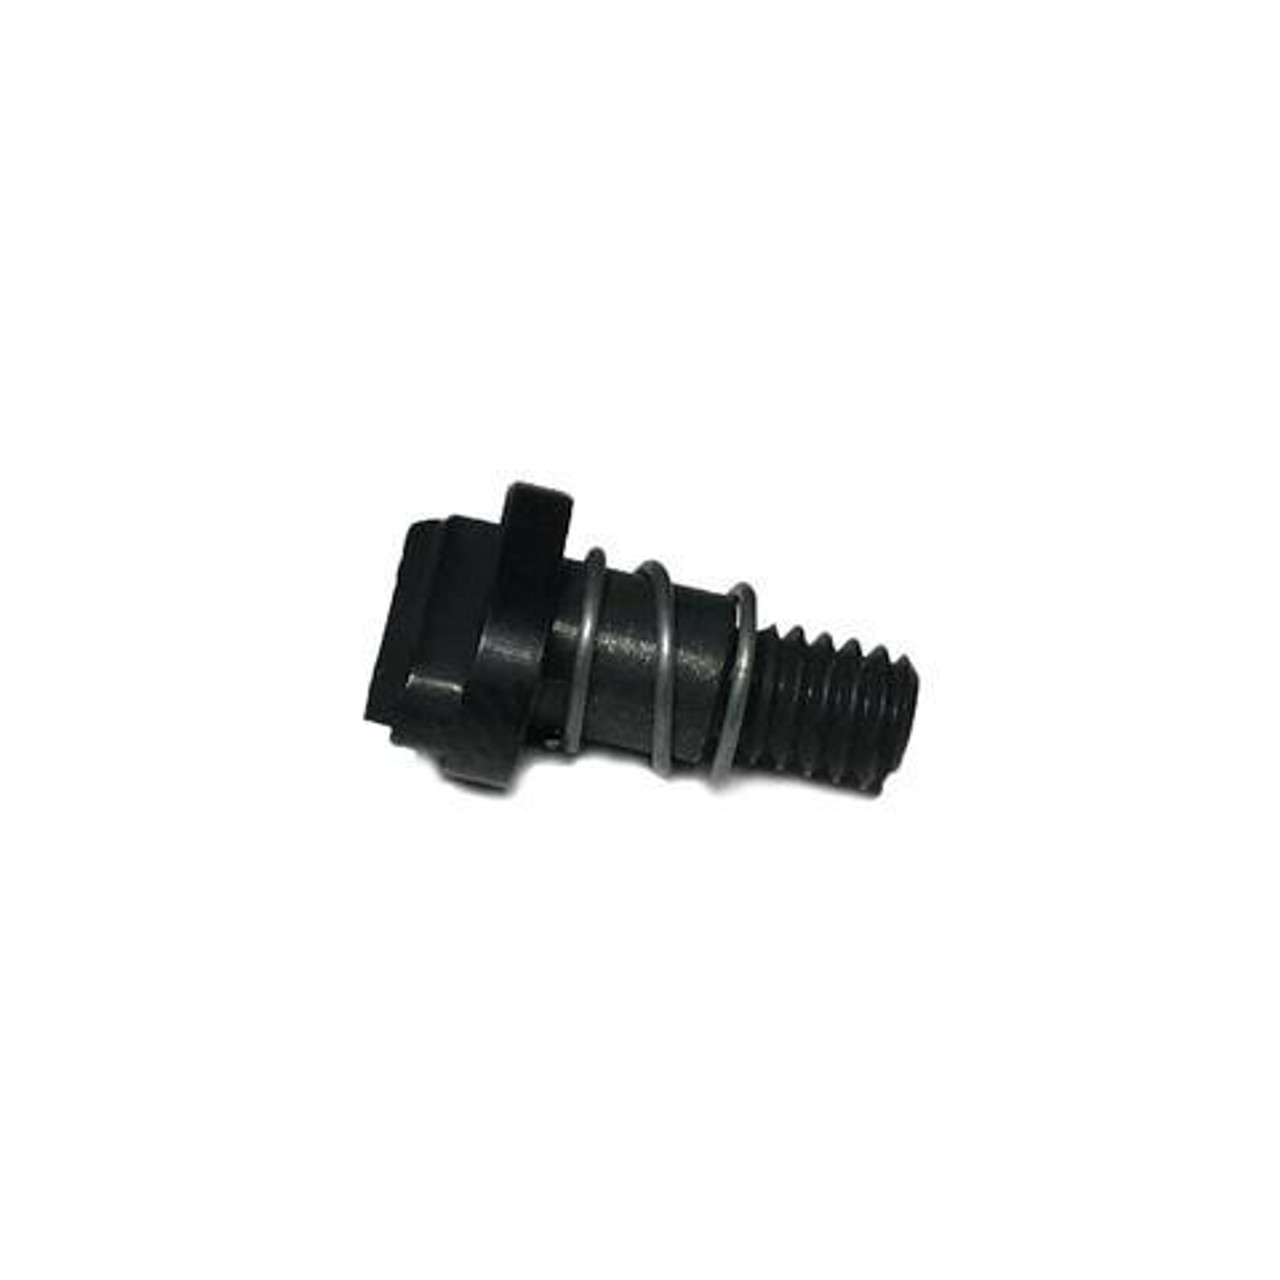 Pantheon Arms Dolos Lock Pawl for Dolos Tri Lug Adapter